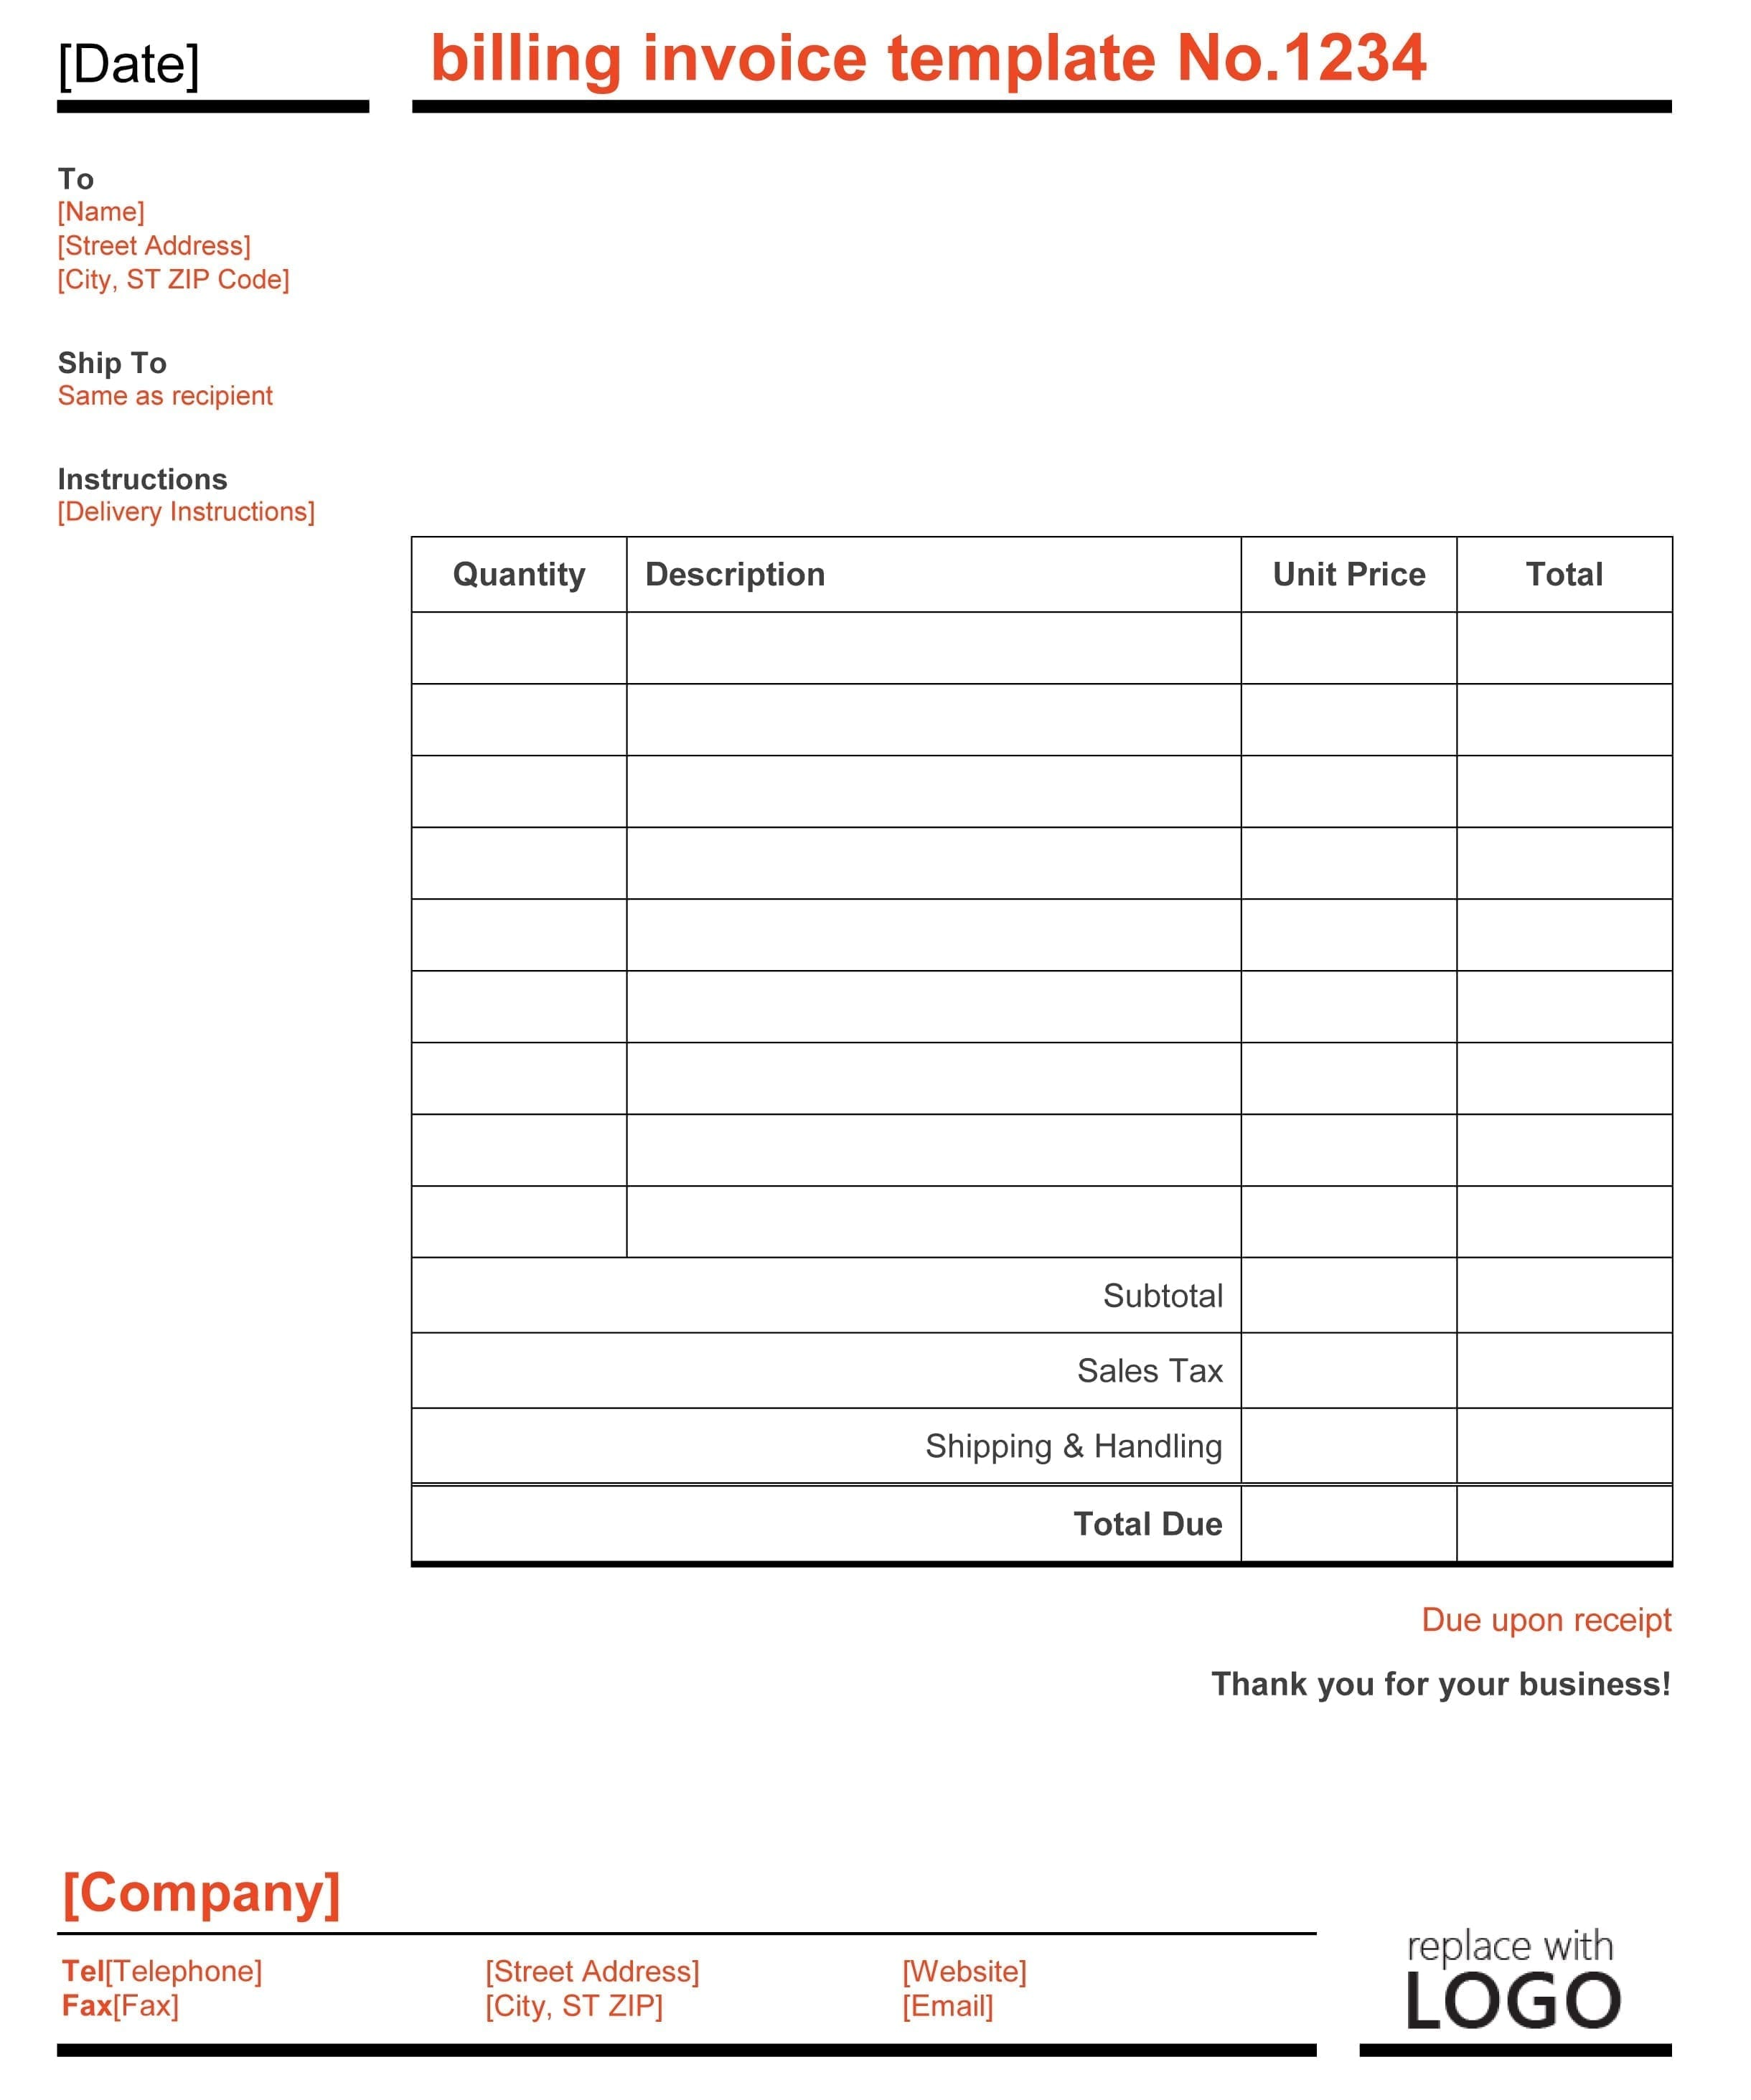 Invoice Template Microsoft Word Mac Invoice Template Microsoft Word Spreadsheet Templates for Busines Spreadsheet Templates for Busines Ms Word 2013 Invoice Template